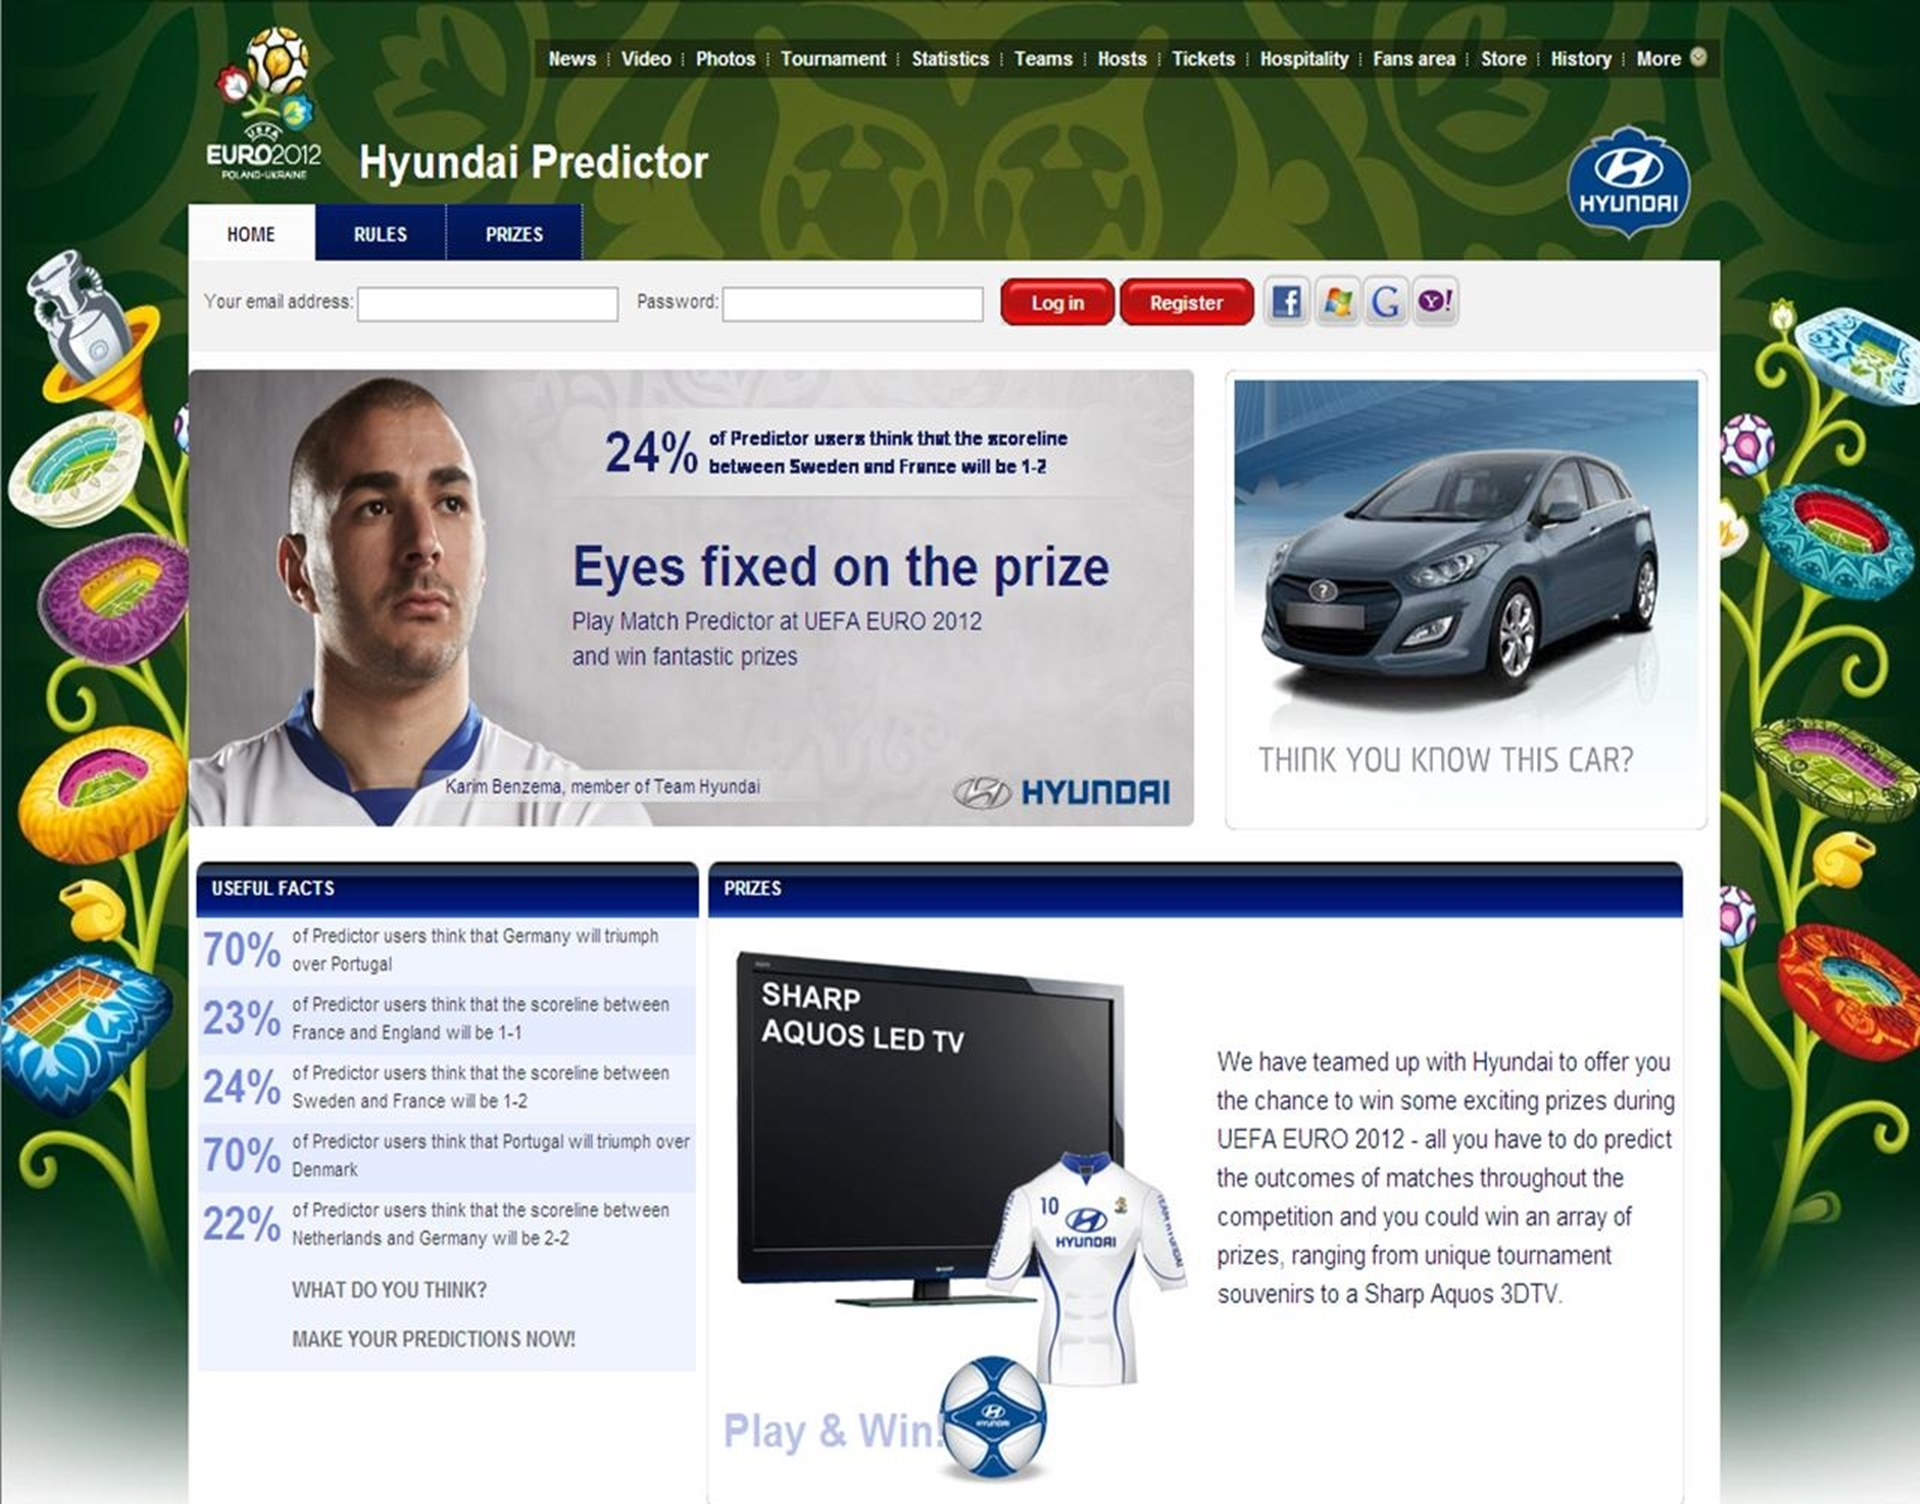 Hyundai UEFA Predictor